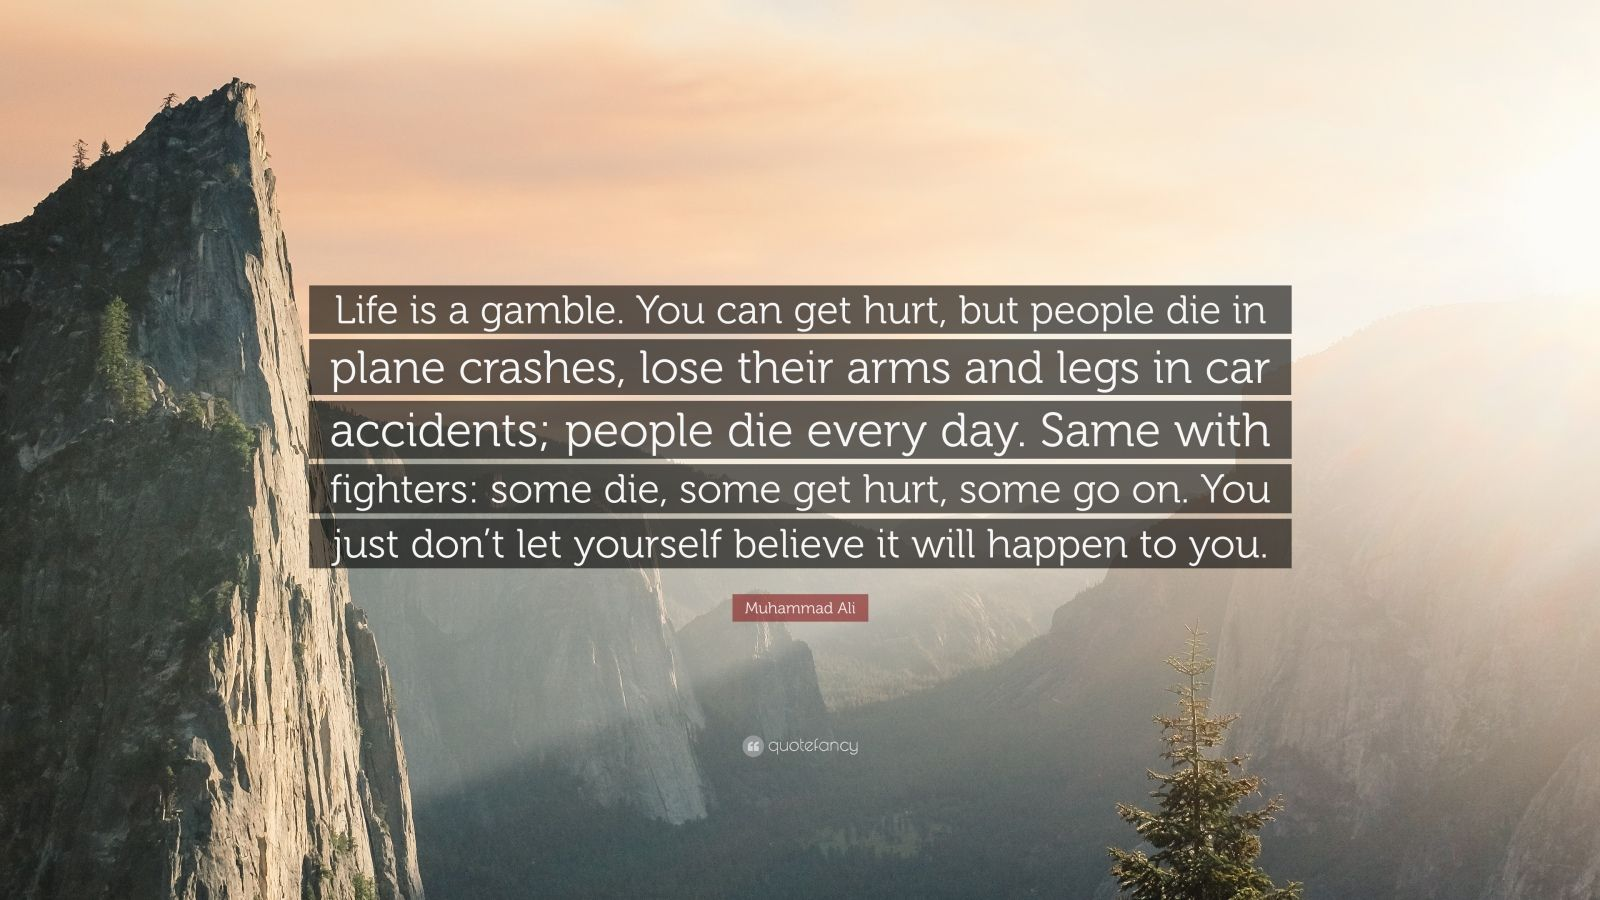 """Muhammad Ali Quote: """"Life is a gamble. You can get hurt, but people die in plane crashes, lose their arms and legs in car accidents; people die every day. Same with fighters: some die, some get hurt, some go on. You just don't let yourself believe it will happen to you."""""""